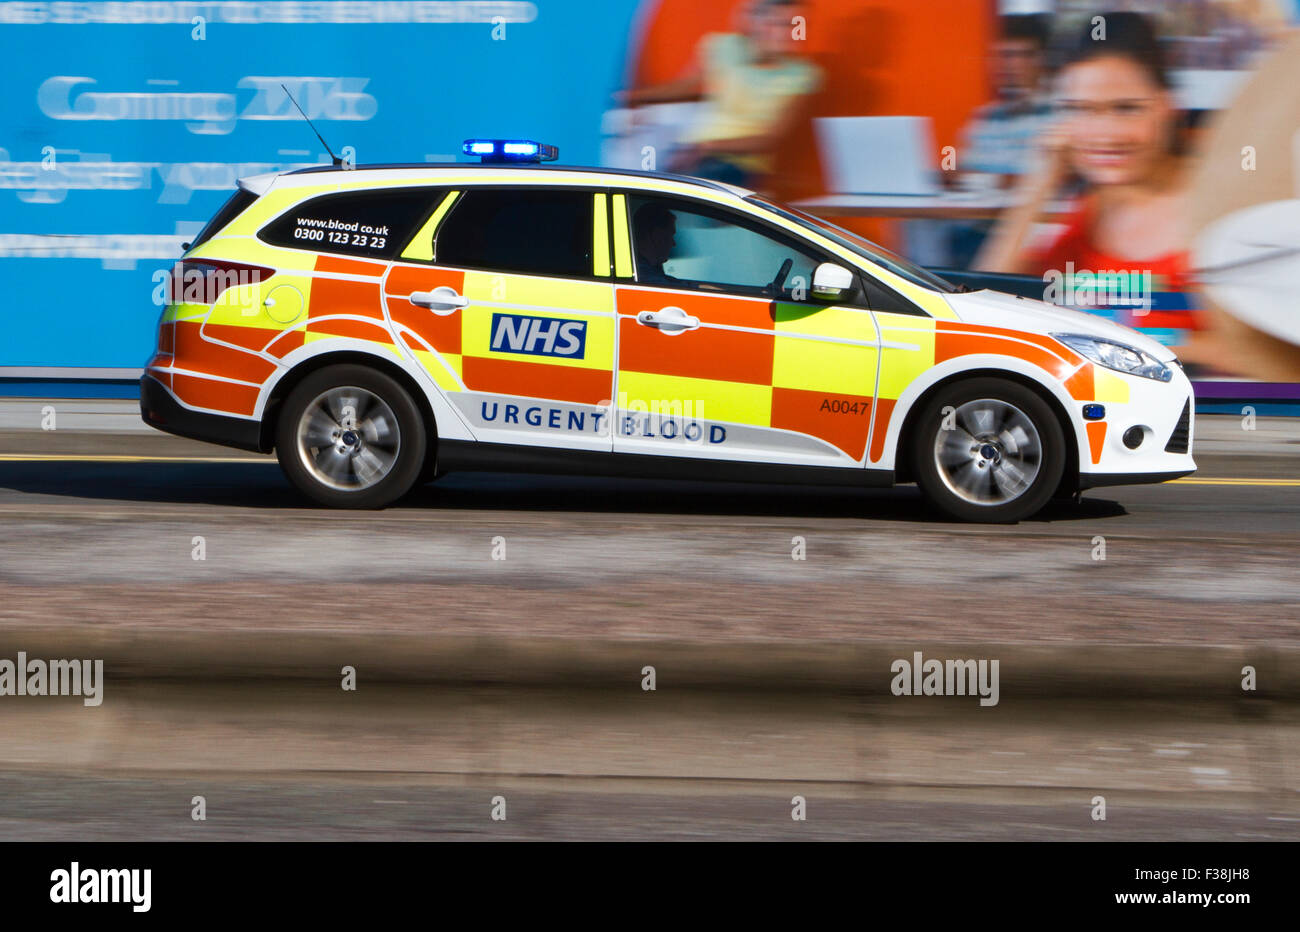 A blurred urgent blood response vehicle with sirens and blue lights speeding through Liverpool City Centre, Merseyside, - Stock Image